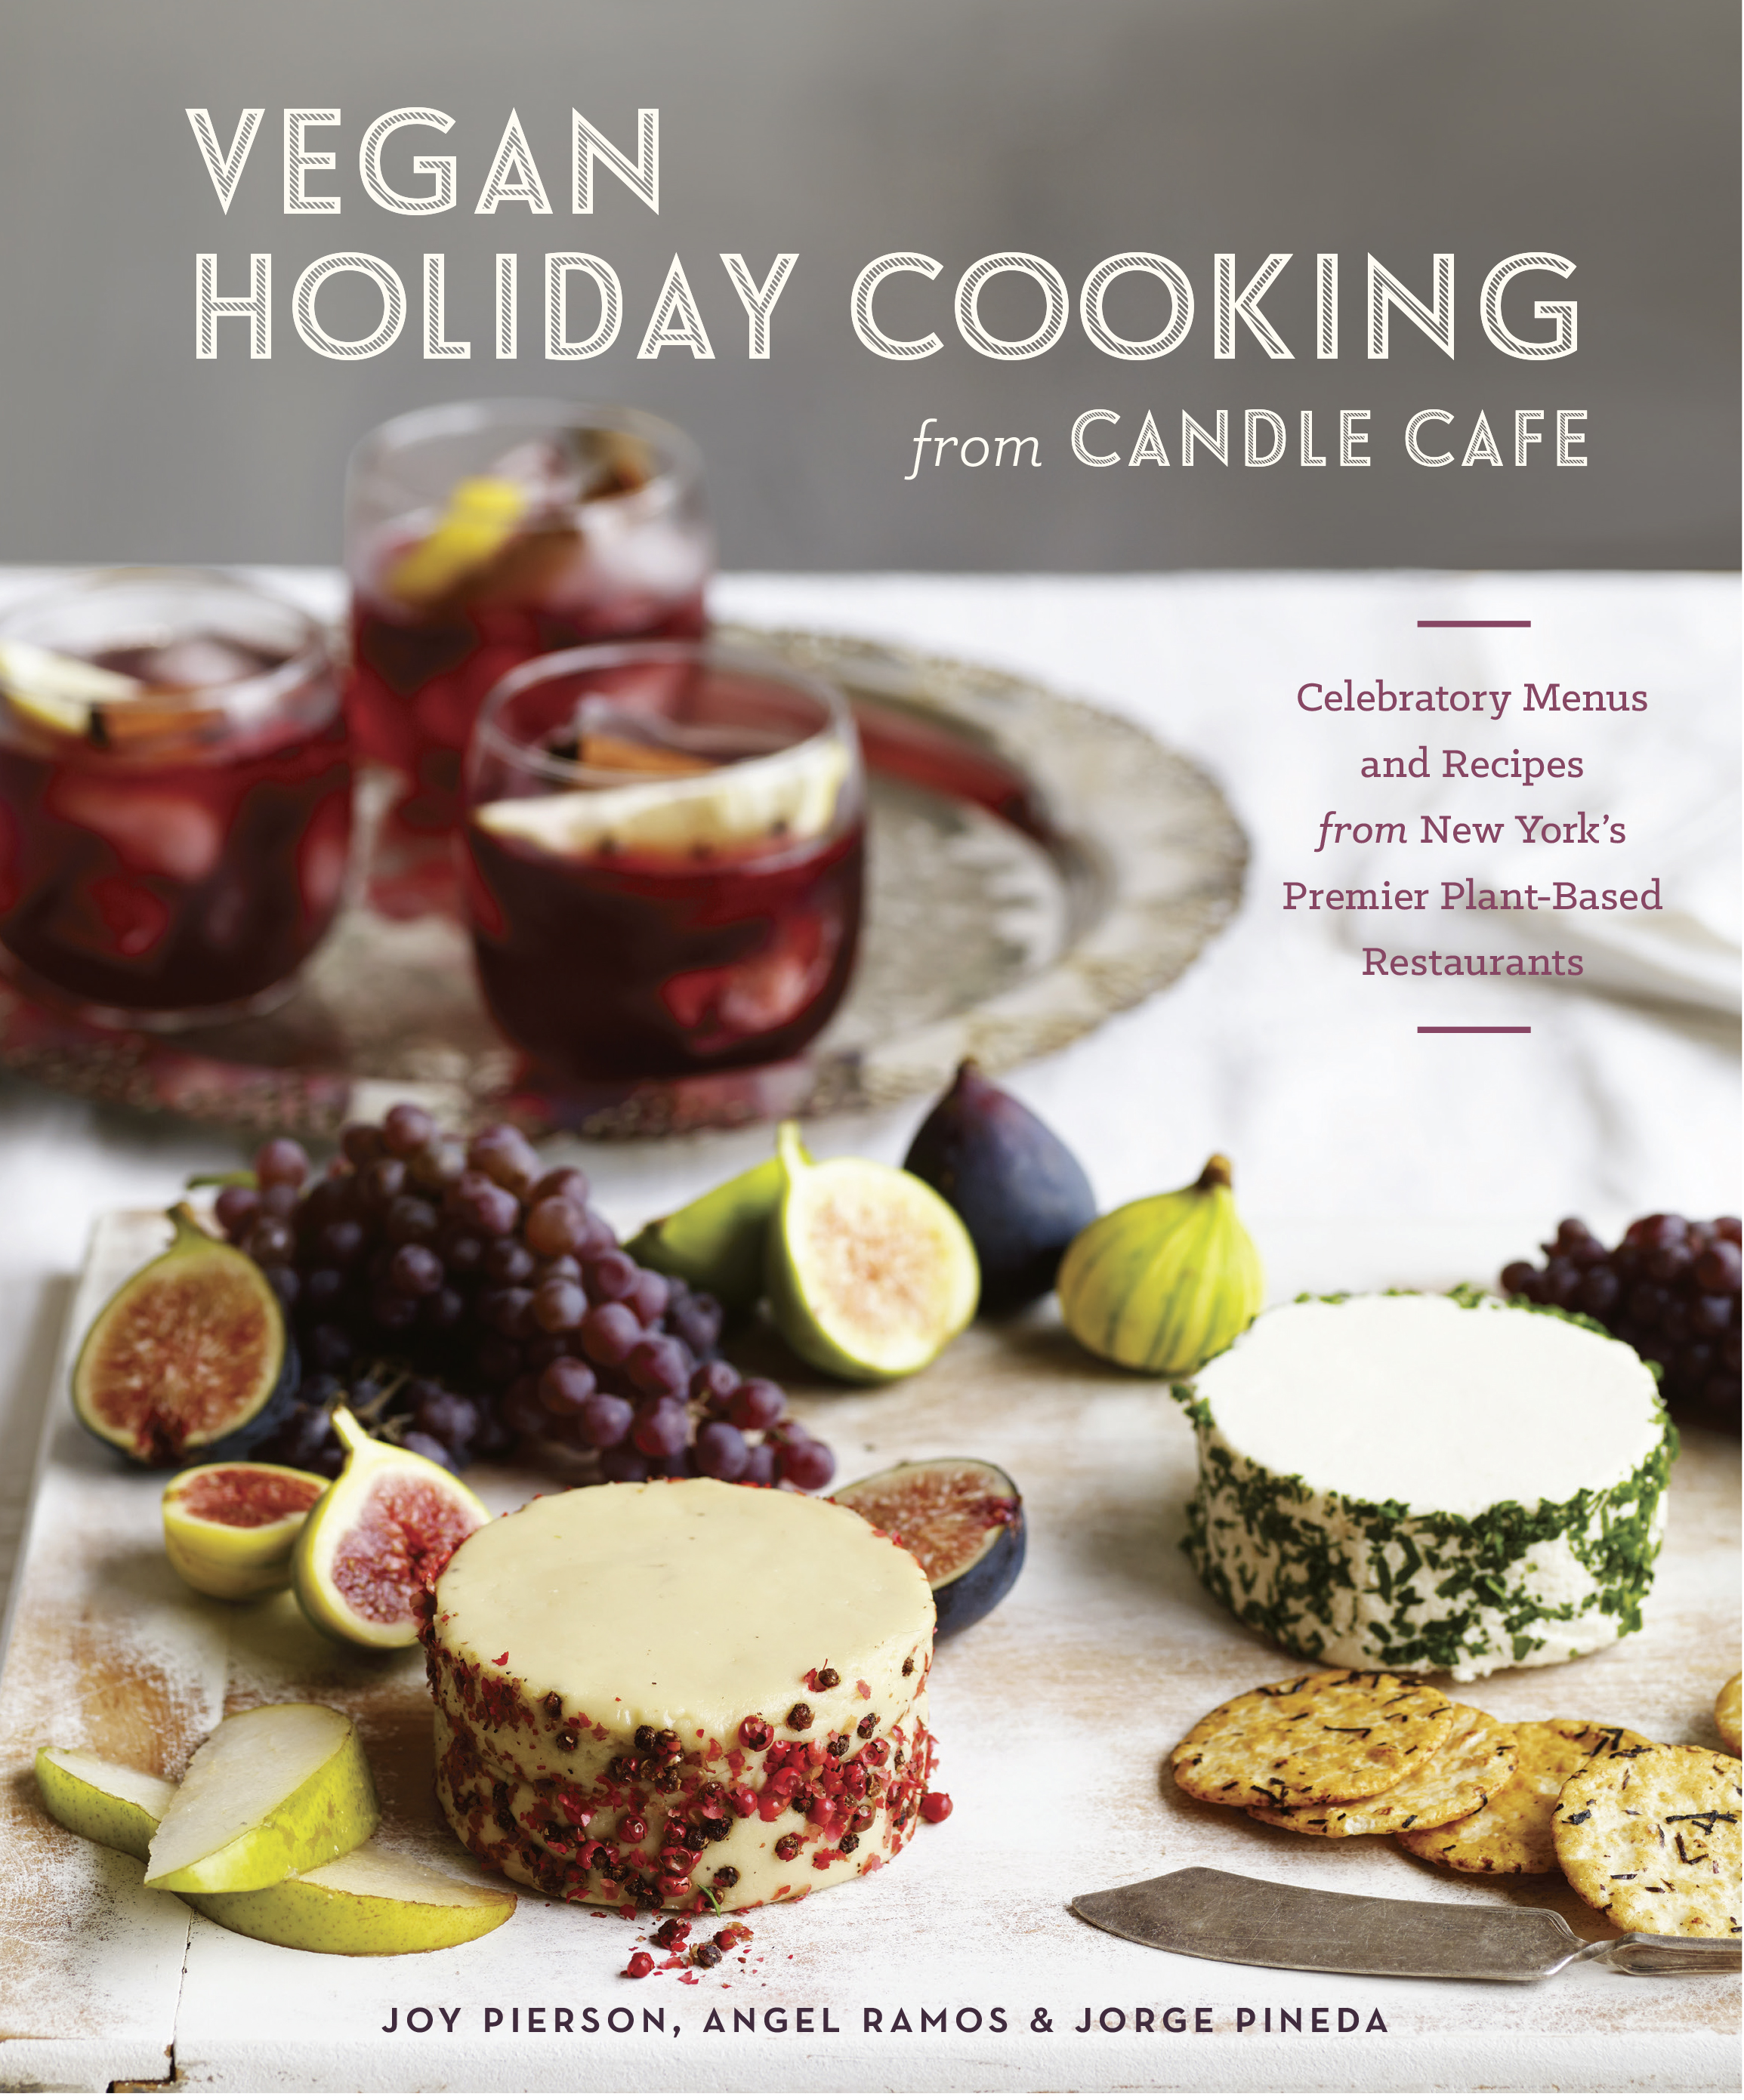 Book Launch: Vegan Holiday Cooking from Candle Cafe by Joy Pierson, Angel Ramos, and Jorge Pineda